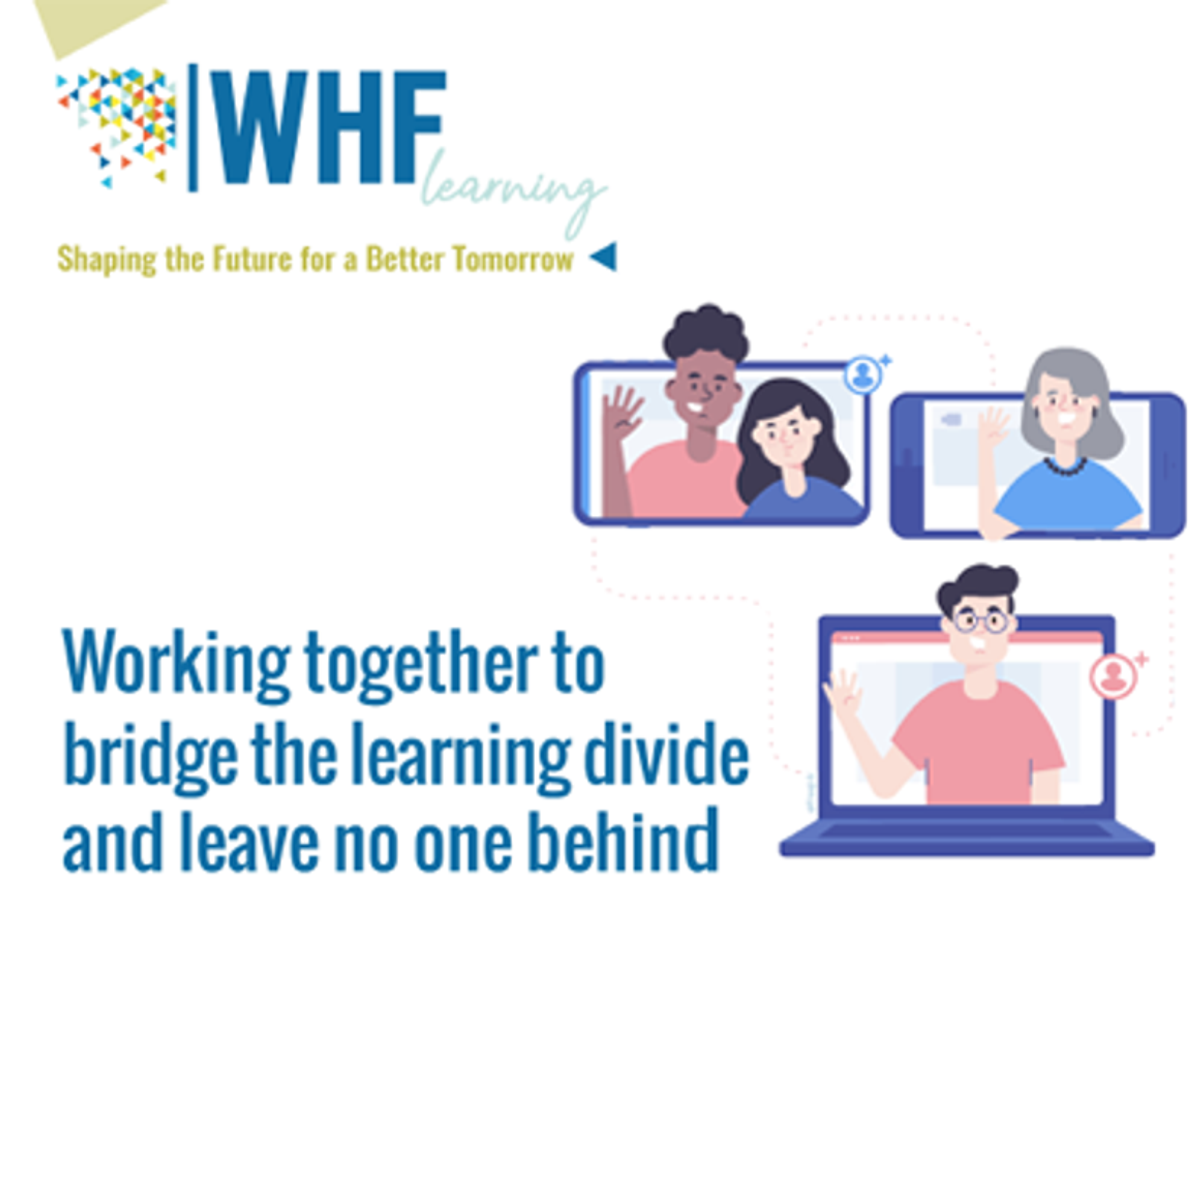 WHF & UNITAR PARTNER TO LEAVE NO ONE BEHIND THROUGH THE DIGITALIZATION OF EDUCATION